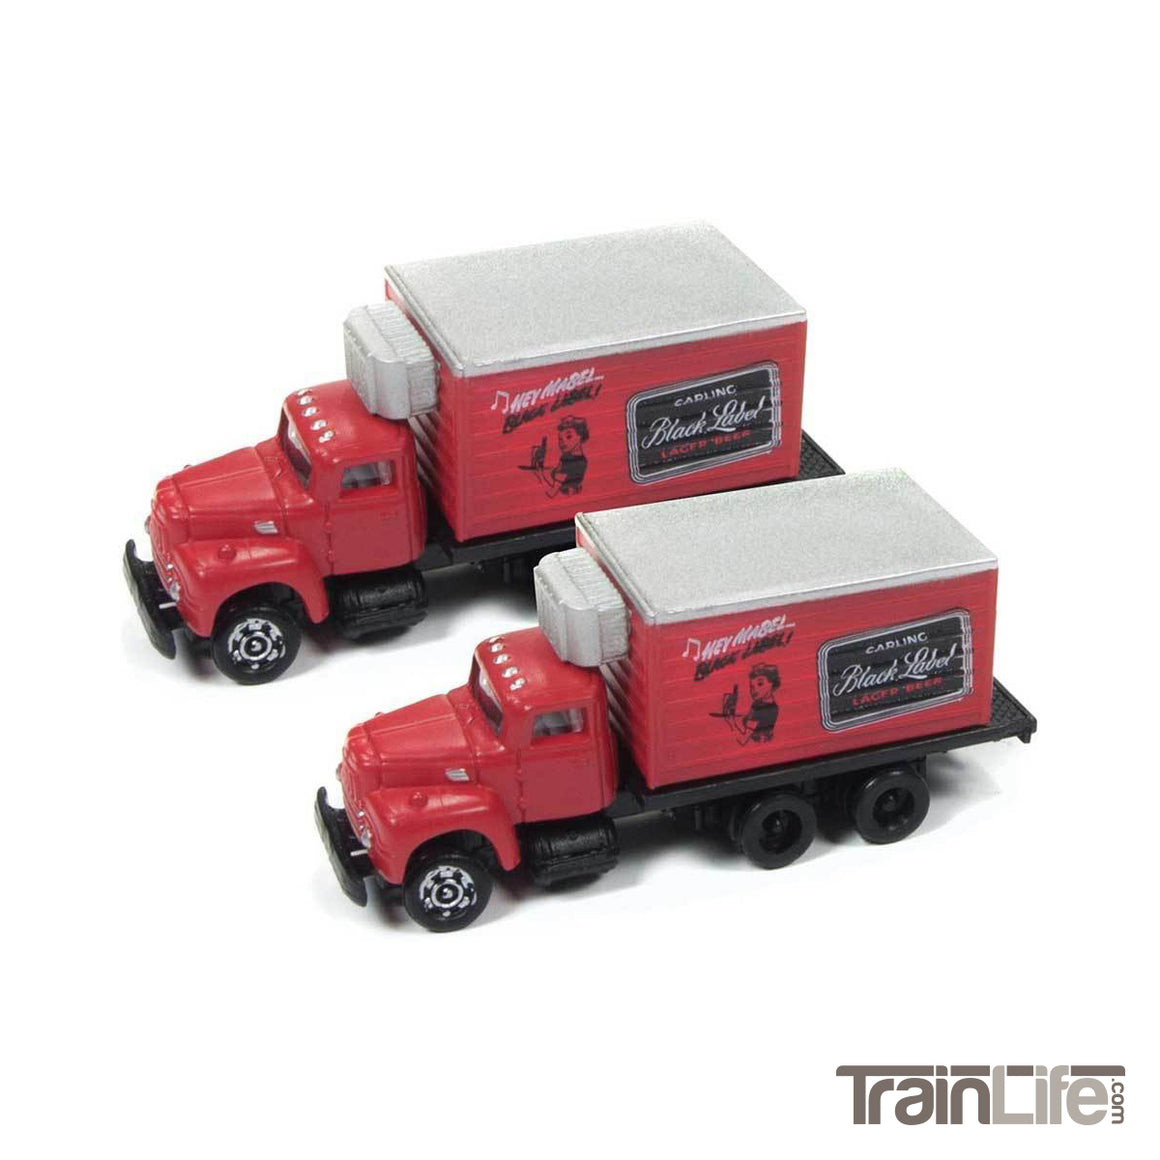 N Scale: IH R-190 Box Delivery Truck - Carling Black Label Beer - 2 Pack